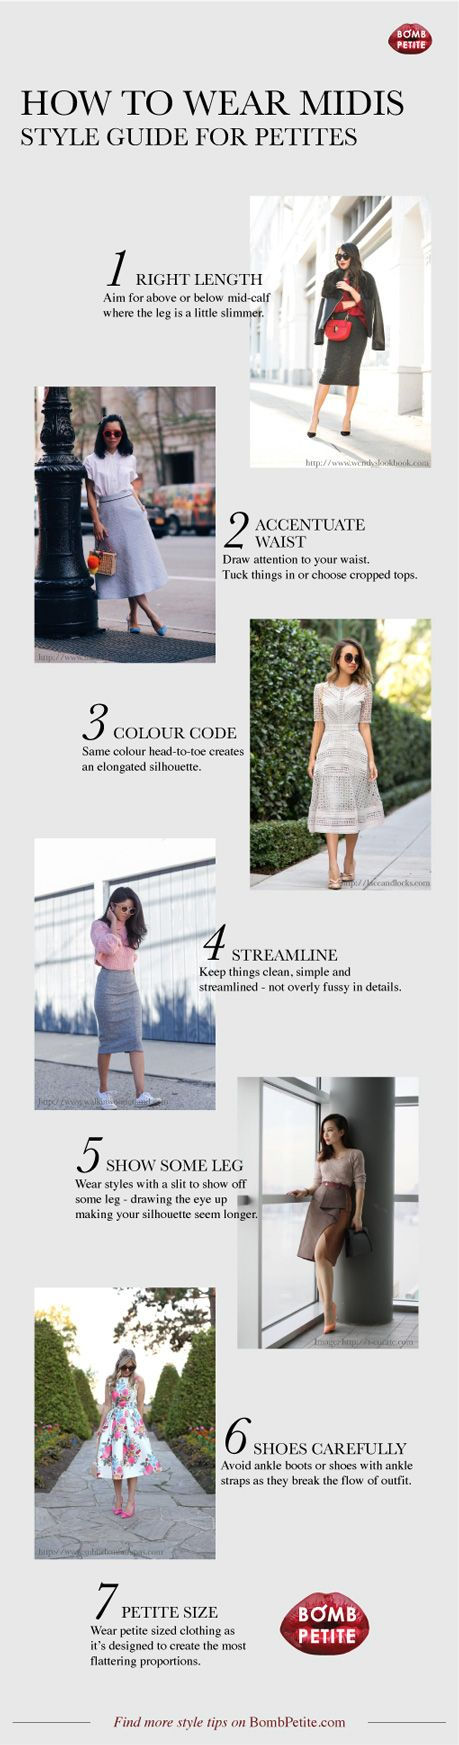 How to wear midi skirts and dresses :: A guide for petite women | Petite dresses, style tips, trends, designers, celebrities and beautiful clothing for petite women.The ultimate petite fashion resource. — BombPetite.com